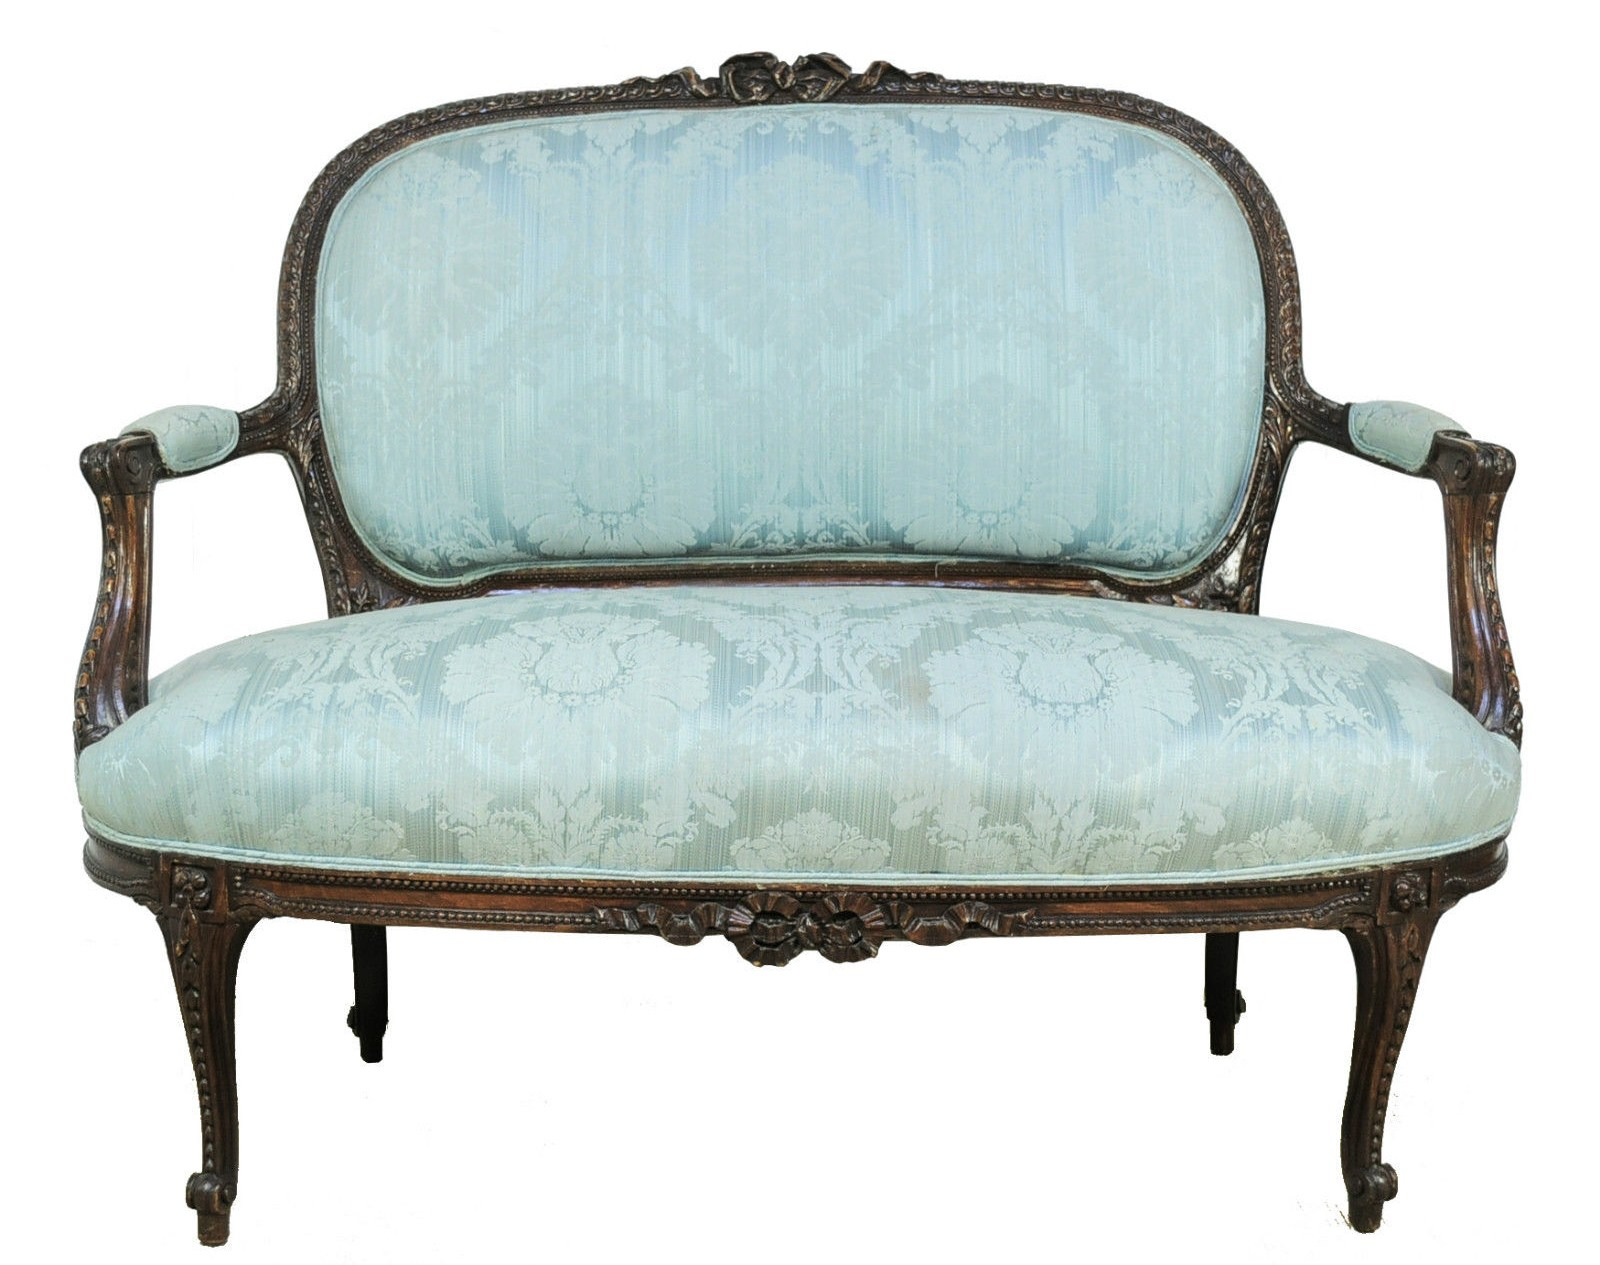 Victorian armchair styles victorian chair vintage chair furniture vector rich carved ornaments Antique loveseat styles